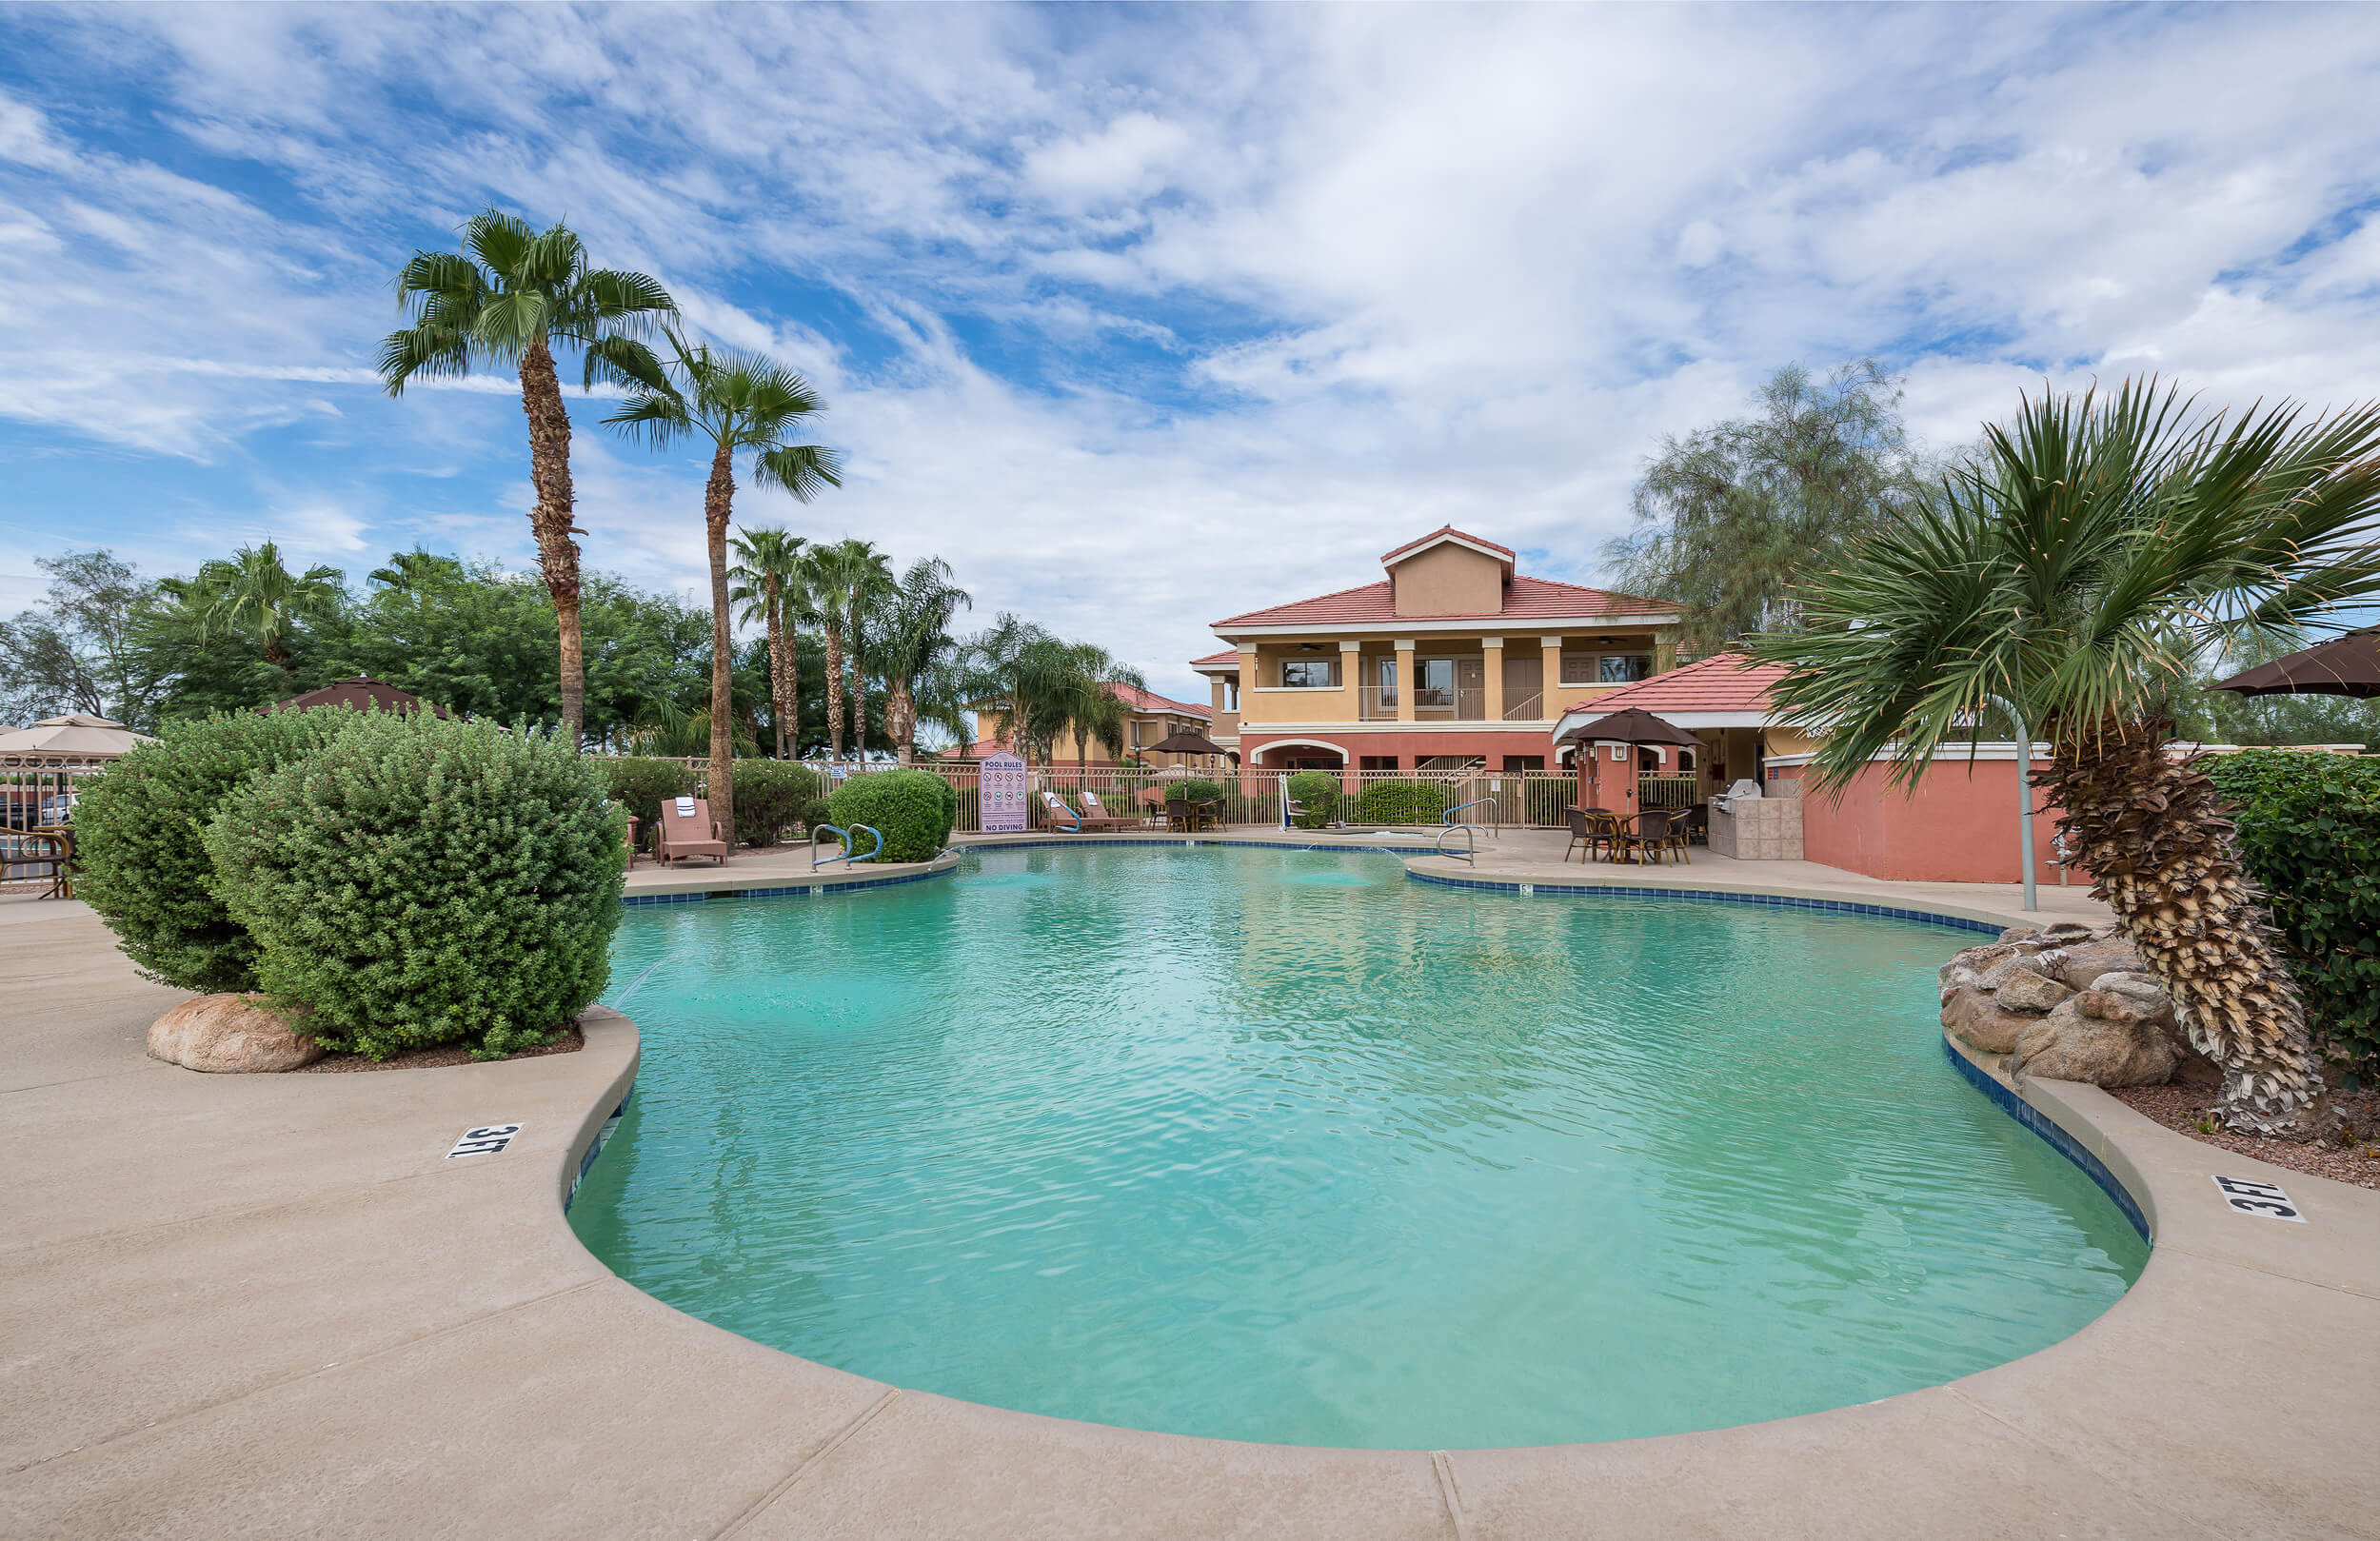 Heated outdoor pool onsite at the best Arizona golf resort Mesa has to offer | Westgate Painted Mountain Golf Resort